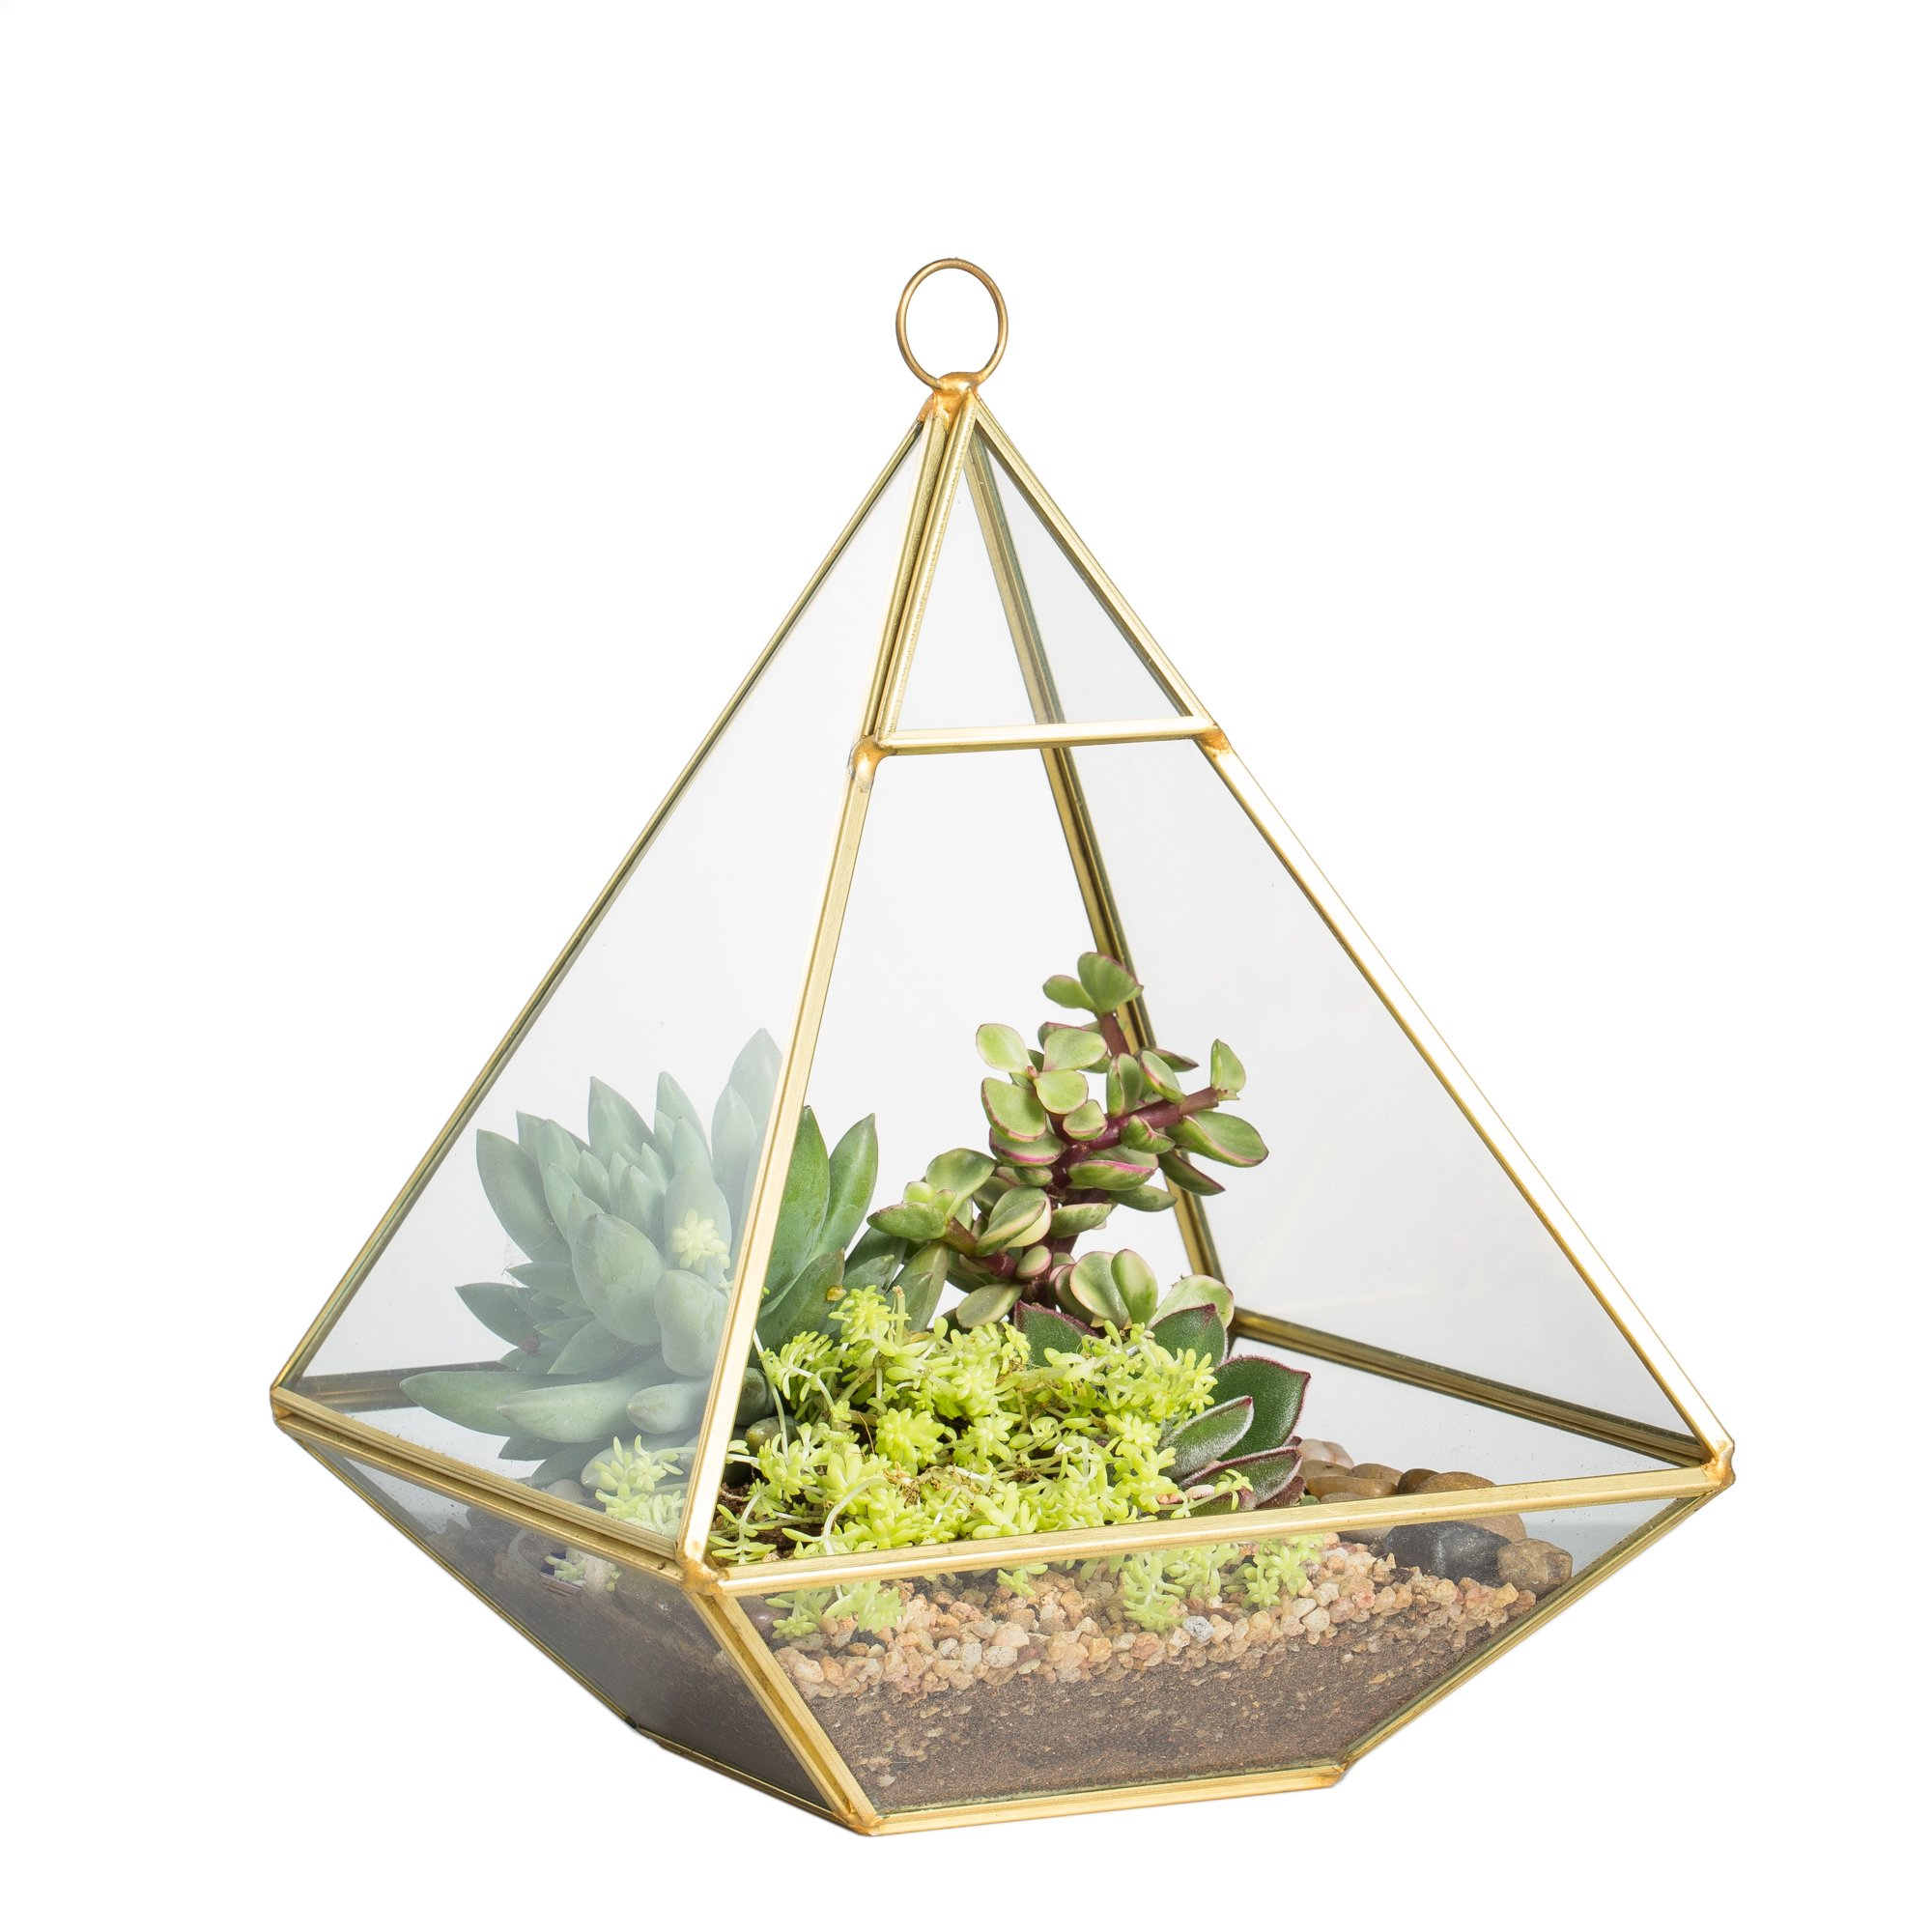 NCYP Copper Pyramid Vertical Metal Glass Geometric Wall Hanging Terrarium Brass Tabletop Succulent Air Plants Holder Planter Fern Moss Box Display Vase Pot 5.9 x 5.9 x 7.87 inches Gold by NCYP